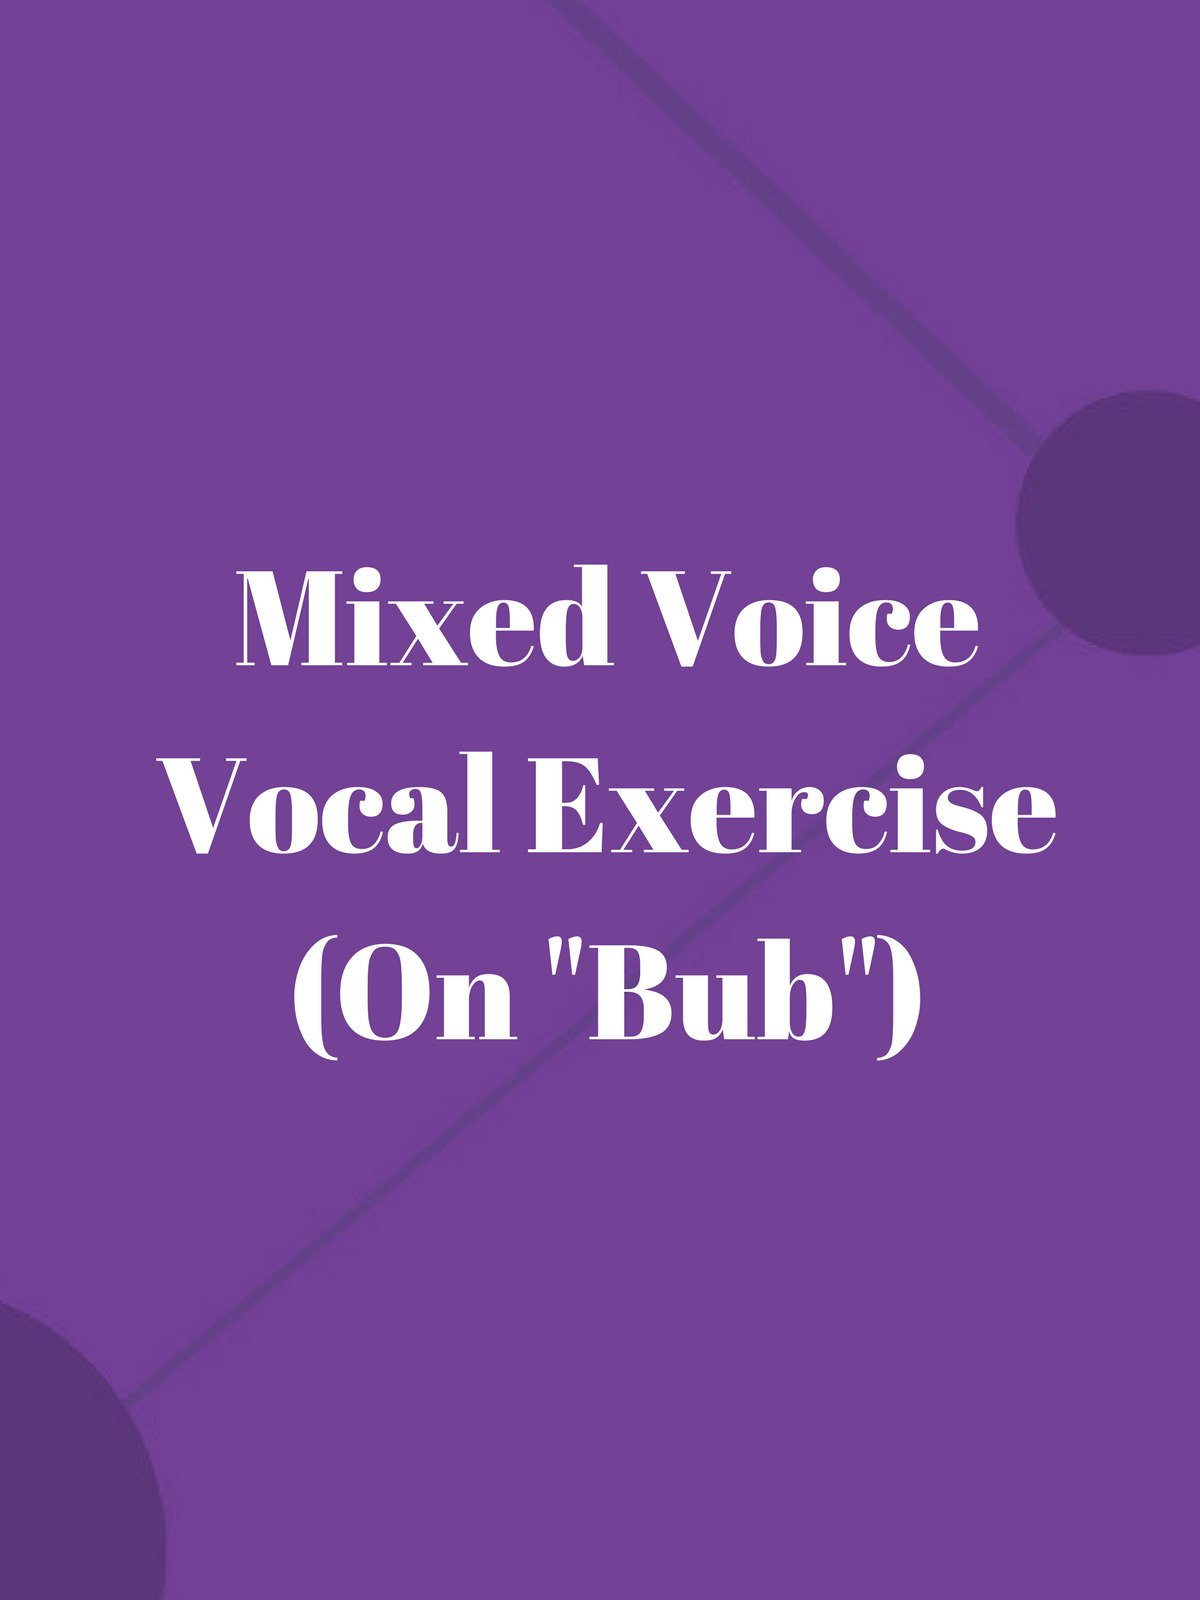 Mixed Voice Vocal Exercise (On Bub) on Amazon Prime Video UK